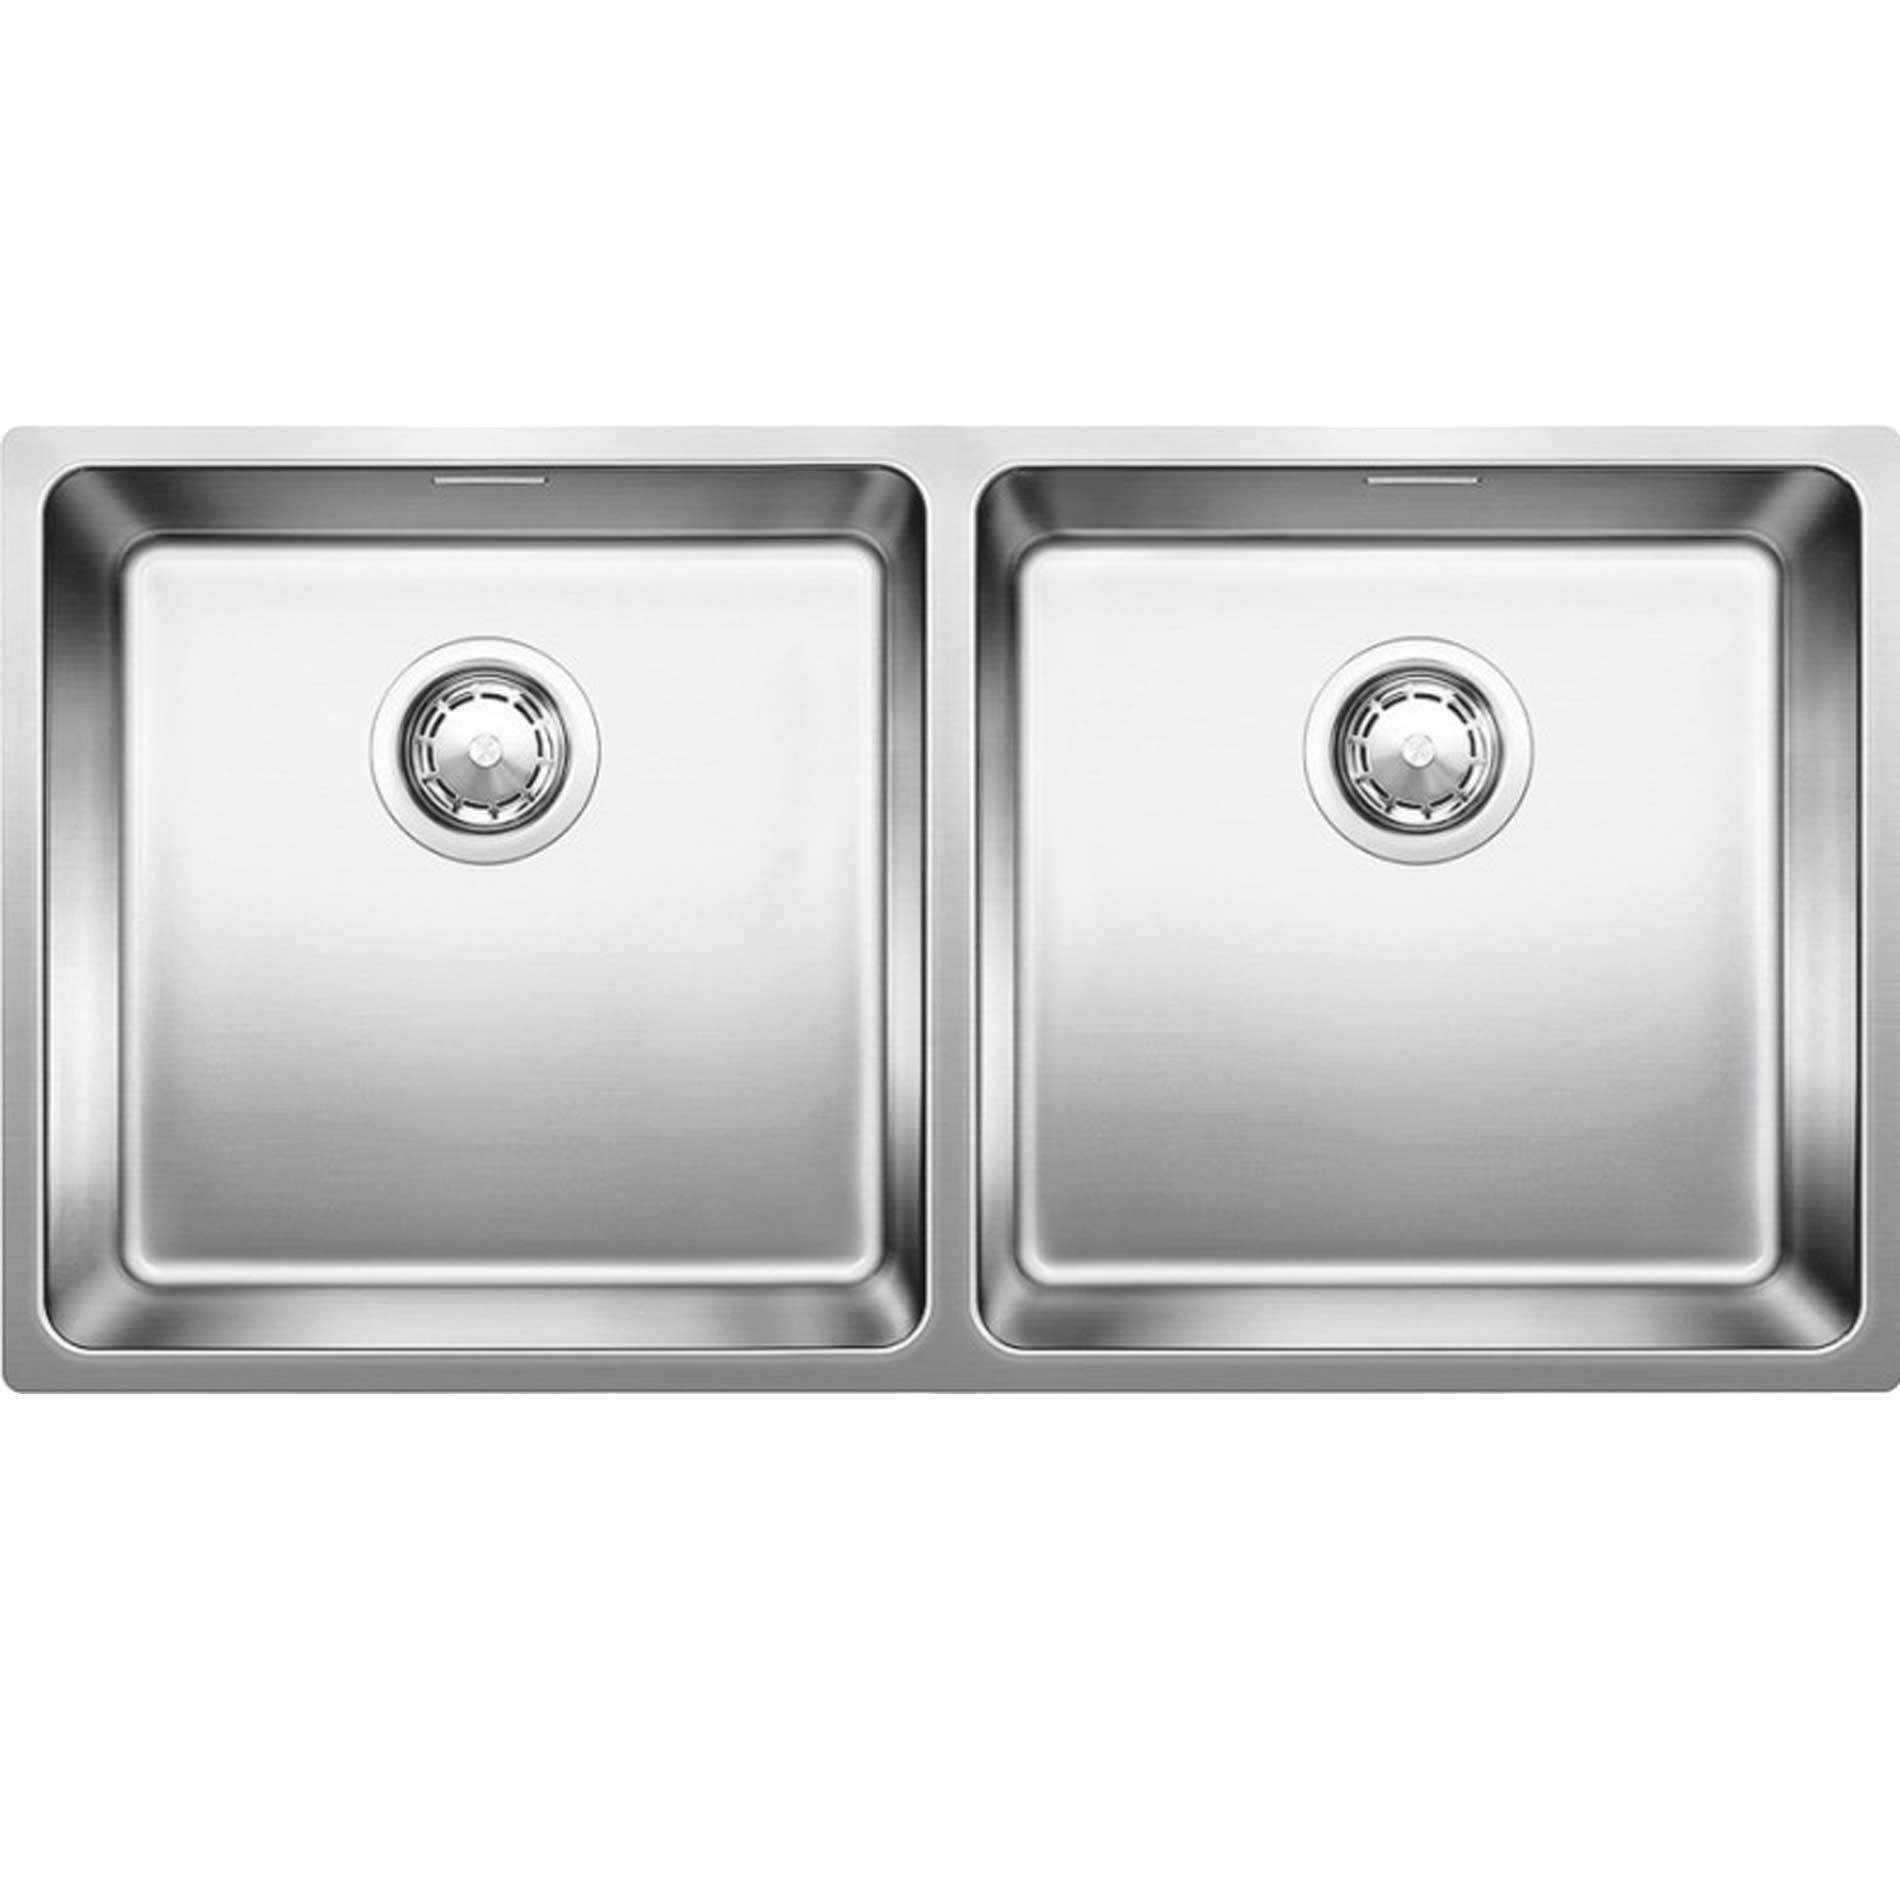 Exceptional Kitchen Sinks U0026 Taps   Blanco: Andano 400/400 IF Stainless Steel Sink. ➤. Best  Stainless Steel Sinks Brand ...